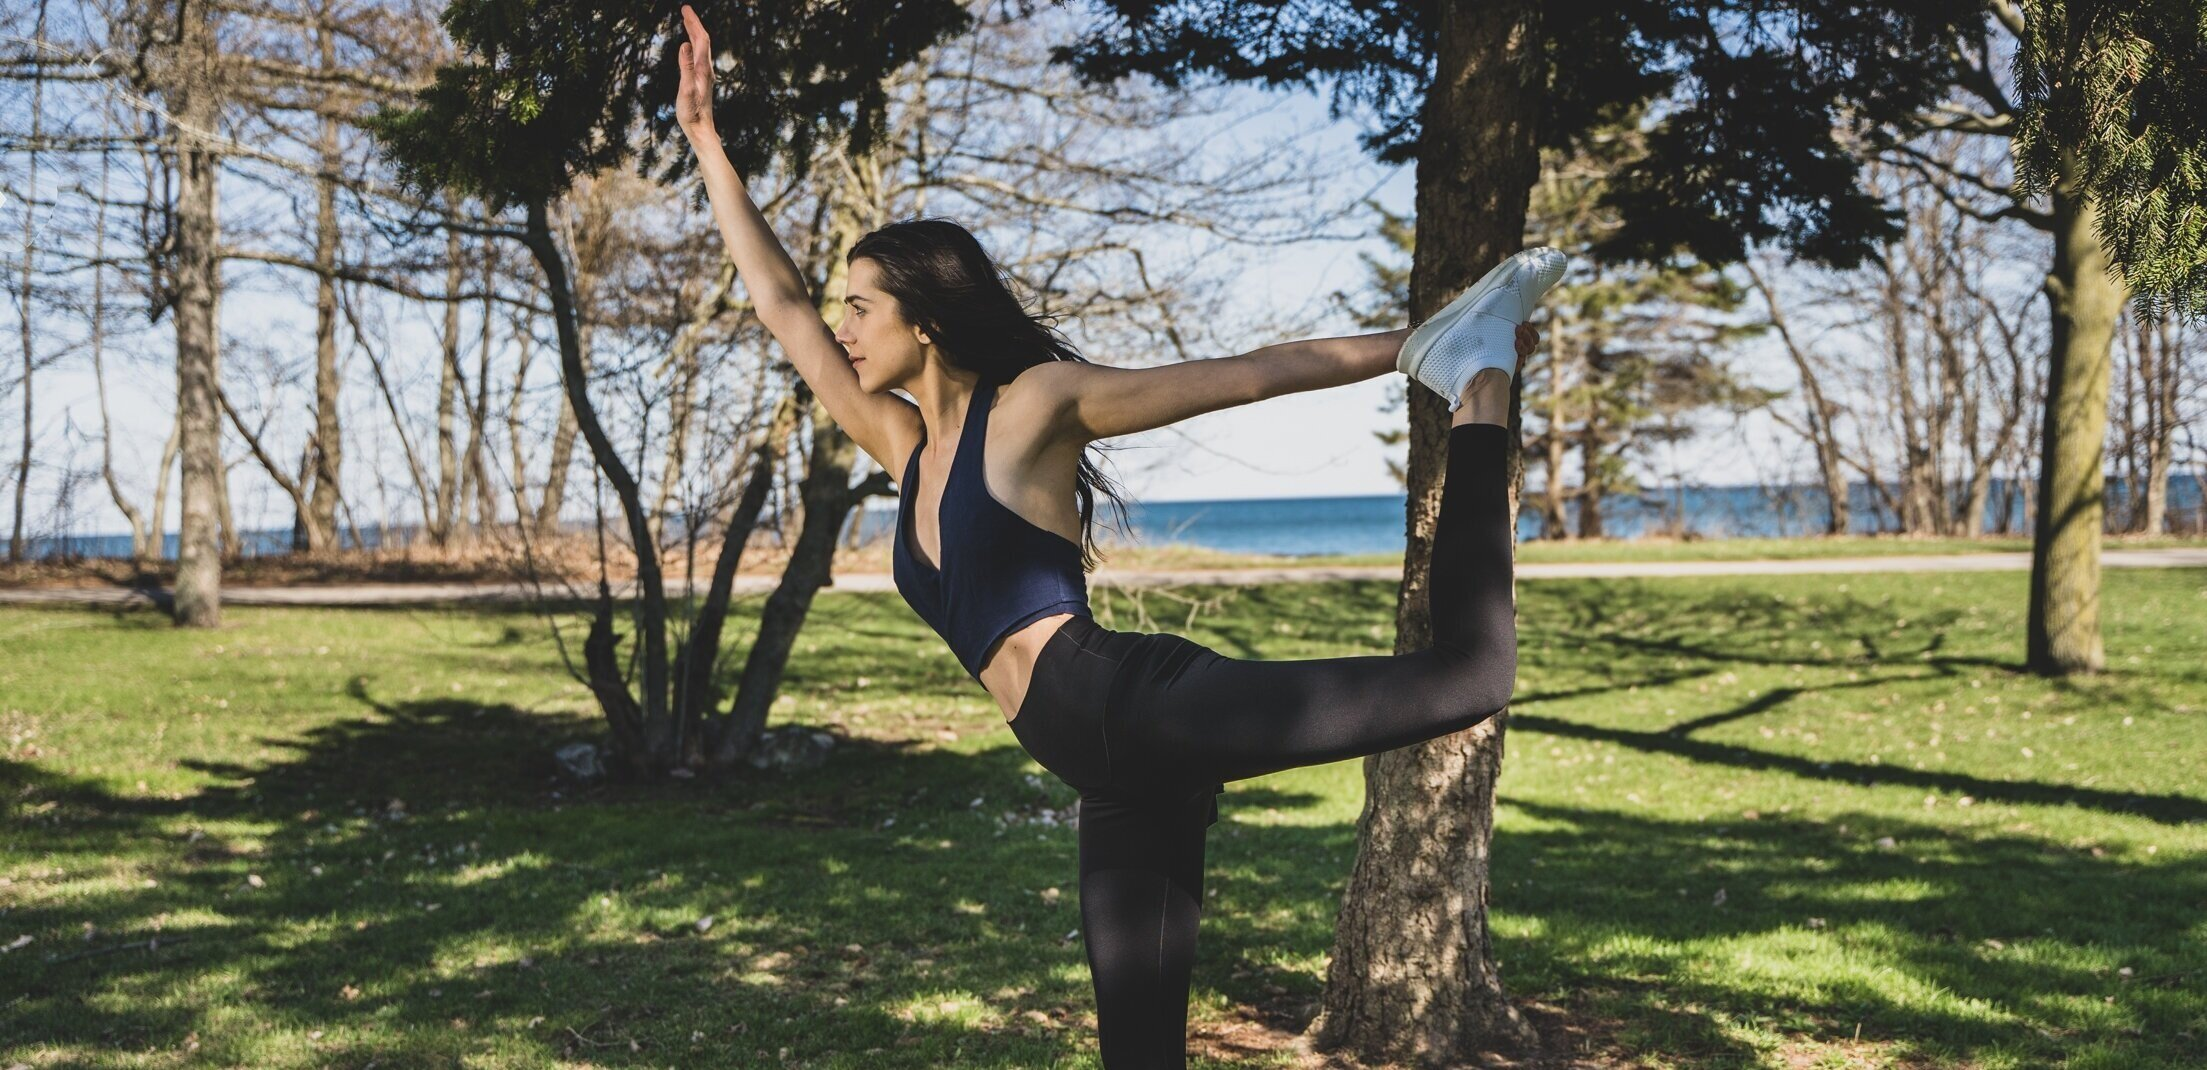 Practice Yoga With Me! - Register for a class or workshop today!